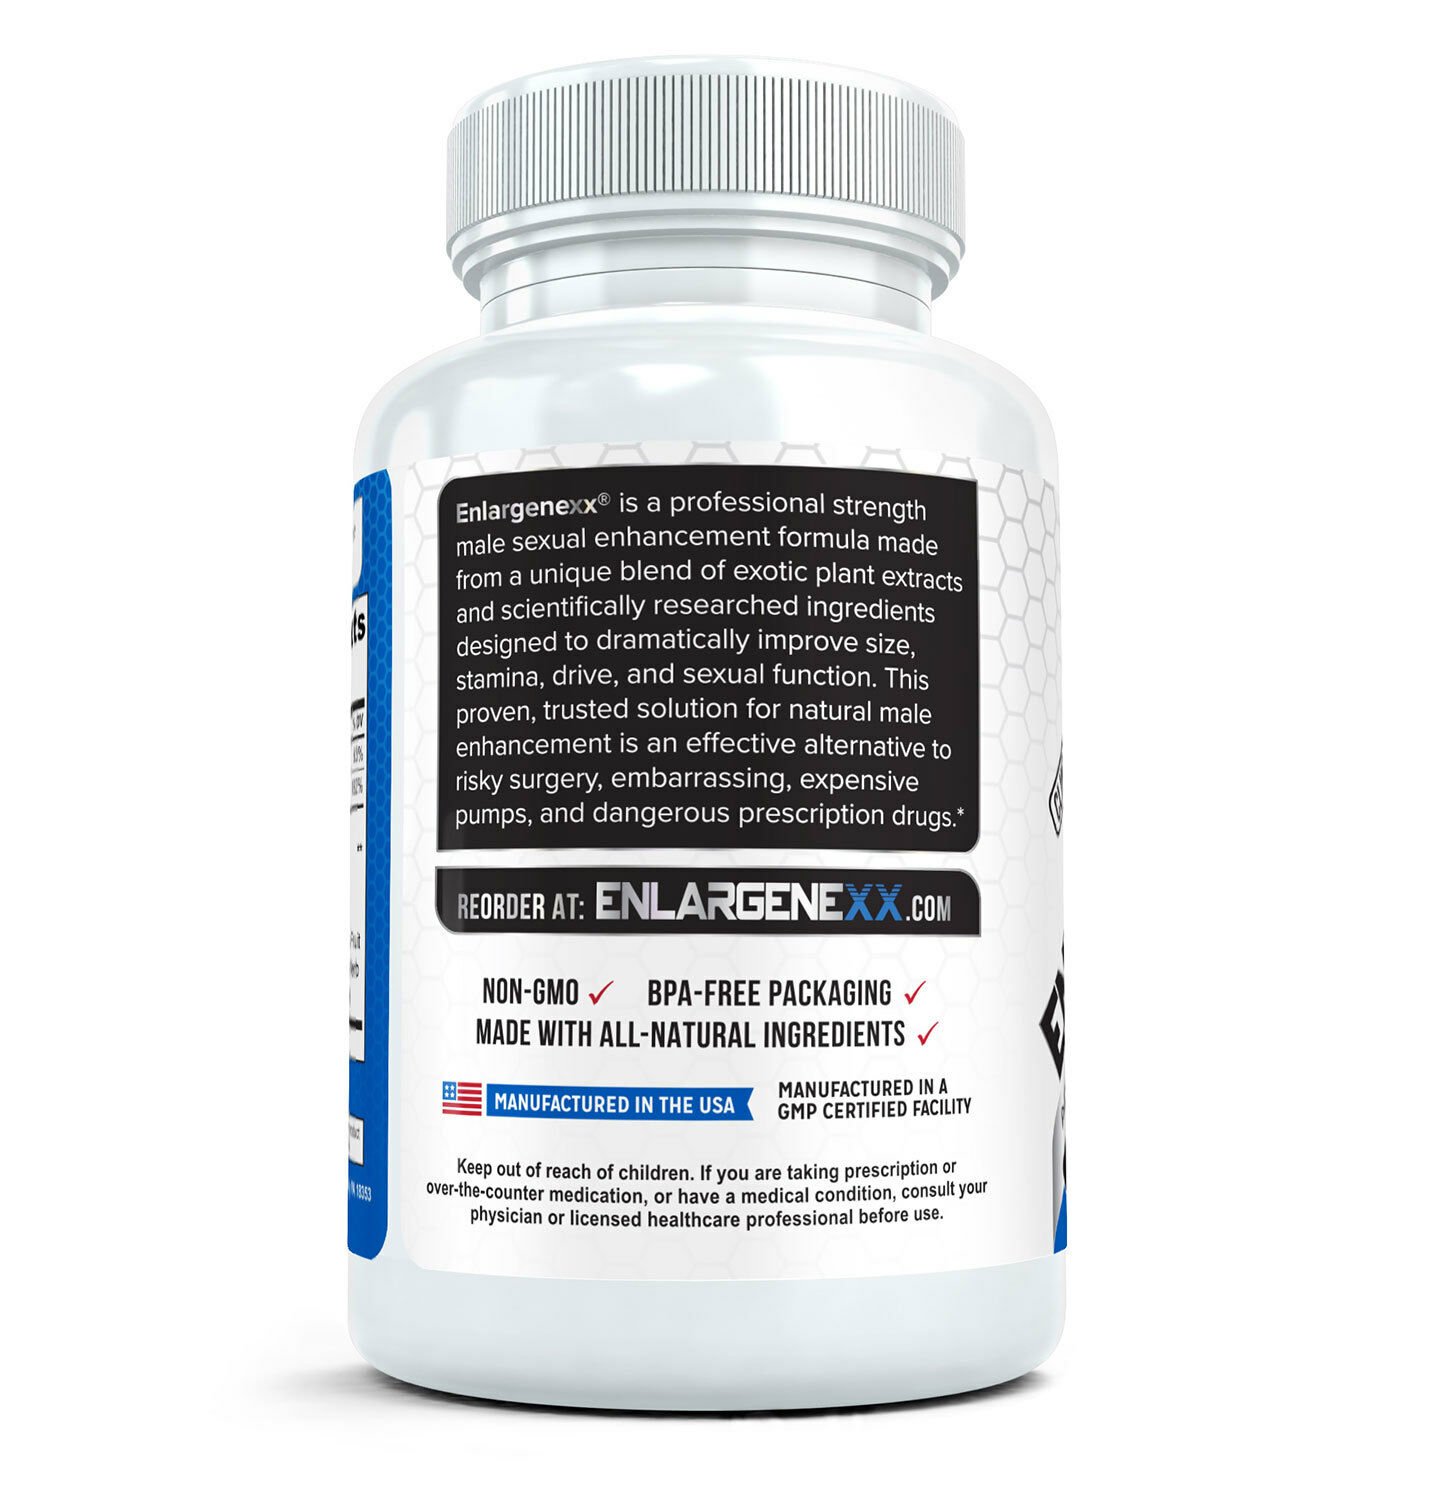 2x ENLARGENEXX  #1 Male Enhancement Pills for Growth (60 Capsules Each) 1